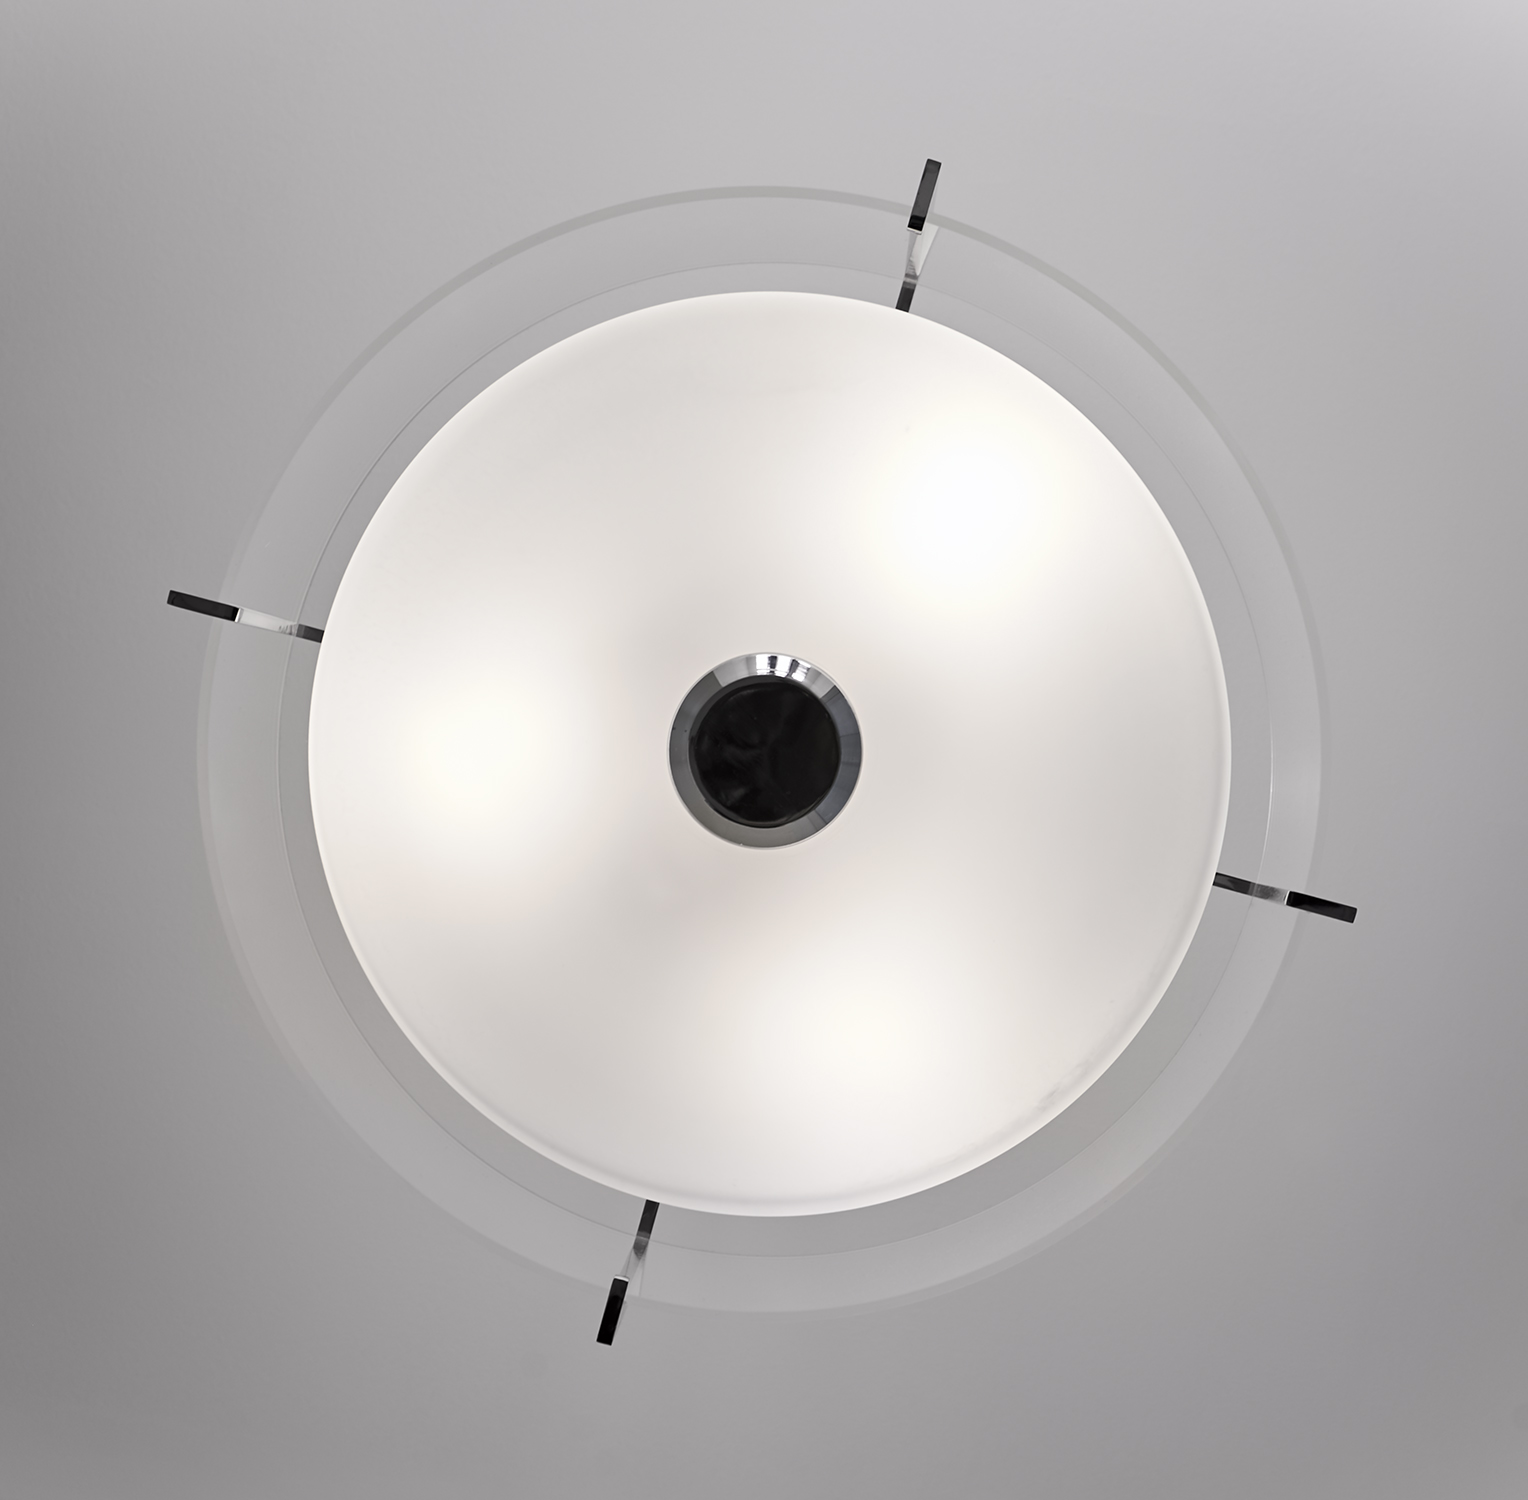 Classic Blue-Grey Bathroom Ceiling Light Fixture details